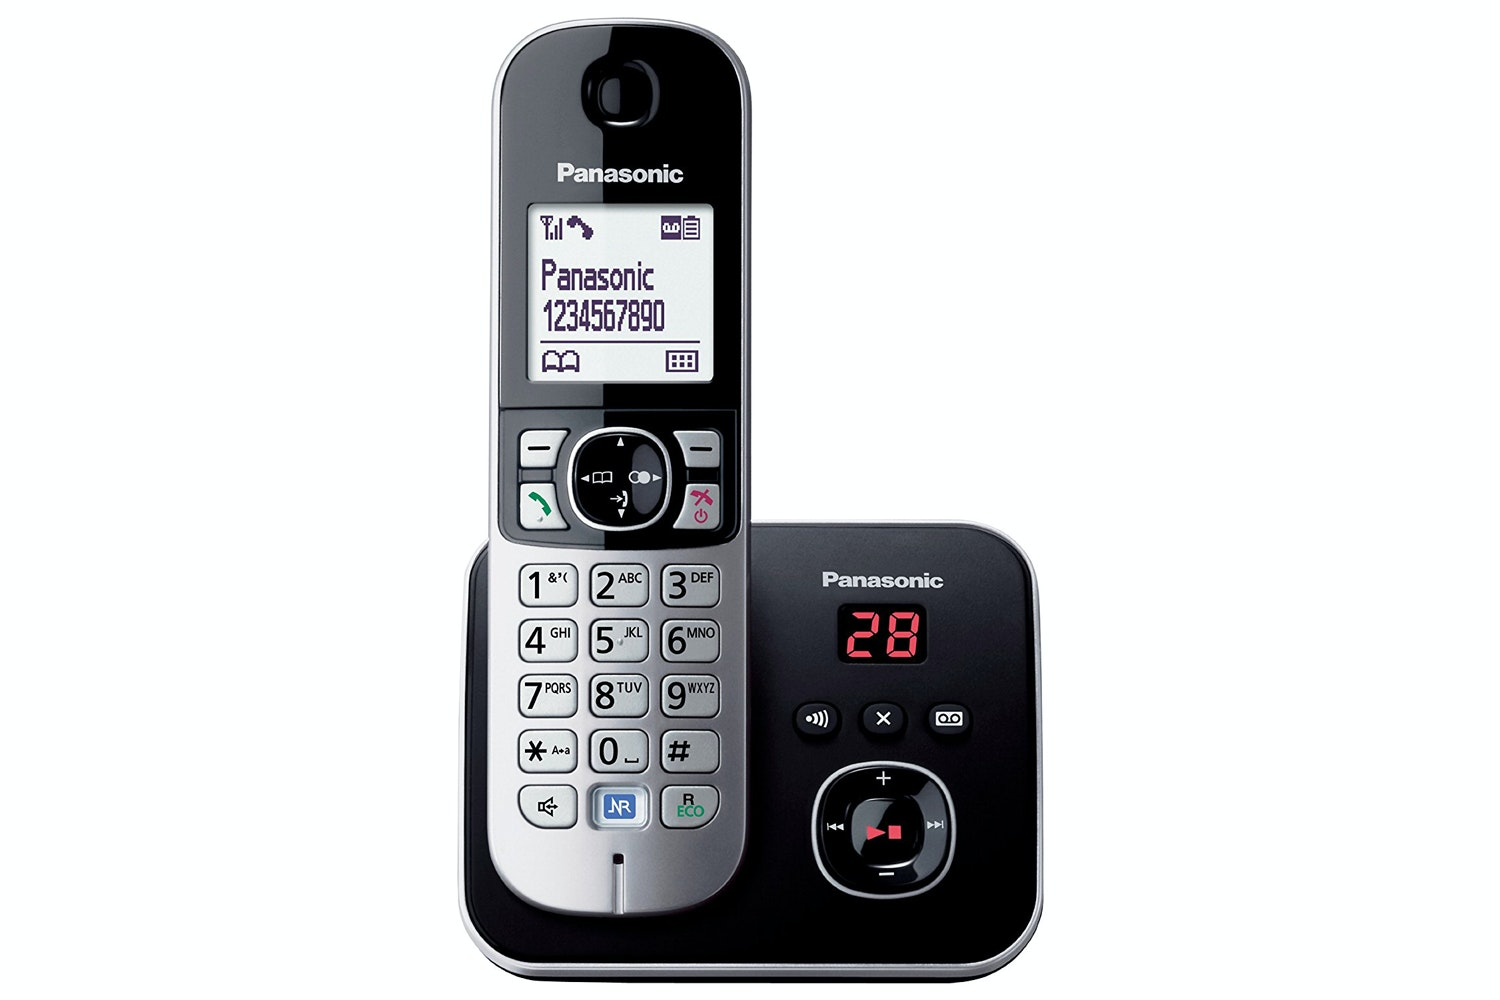 Panasonic 6821 Cordless Phone with Answering Machine